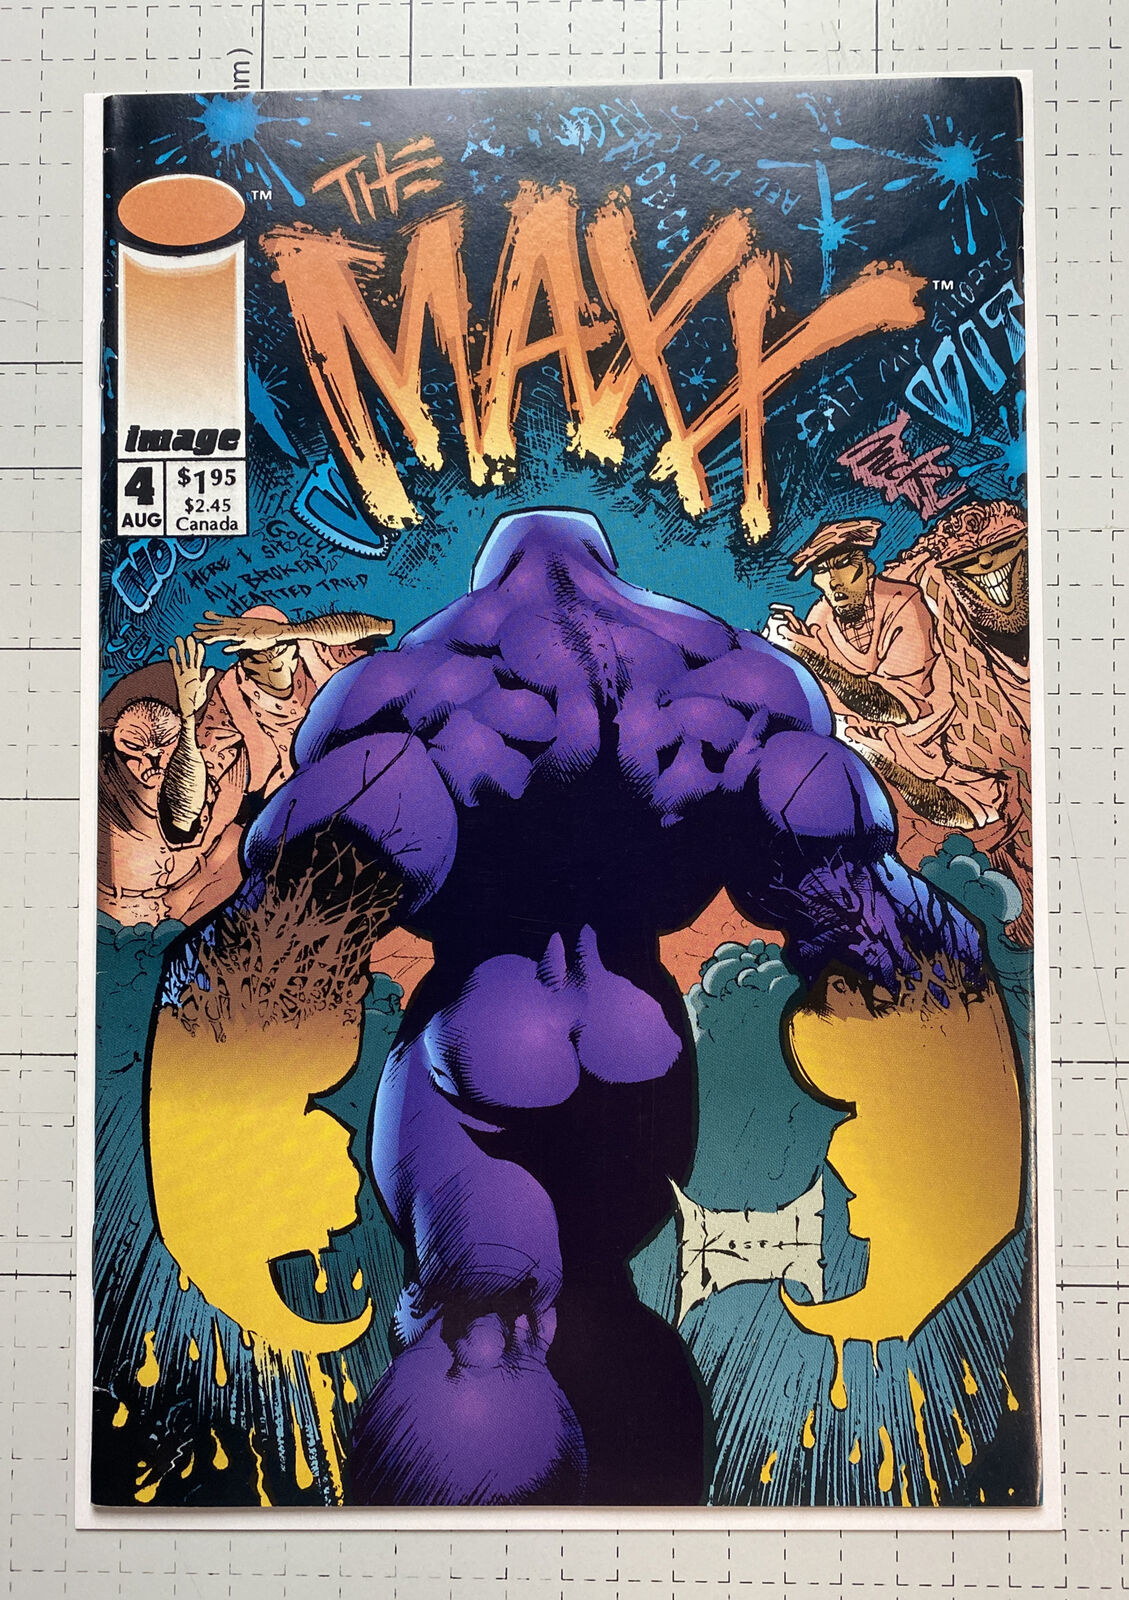 Primary image for The Maxx #4 1993 Image (High Grade)